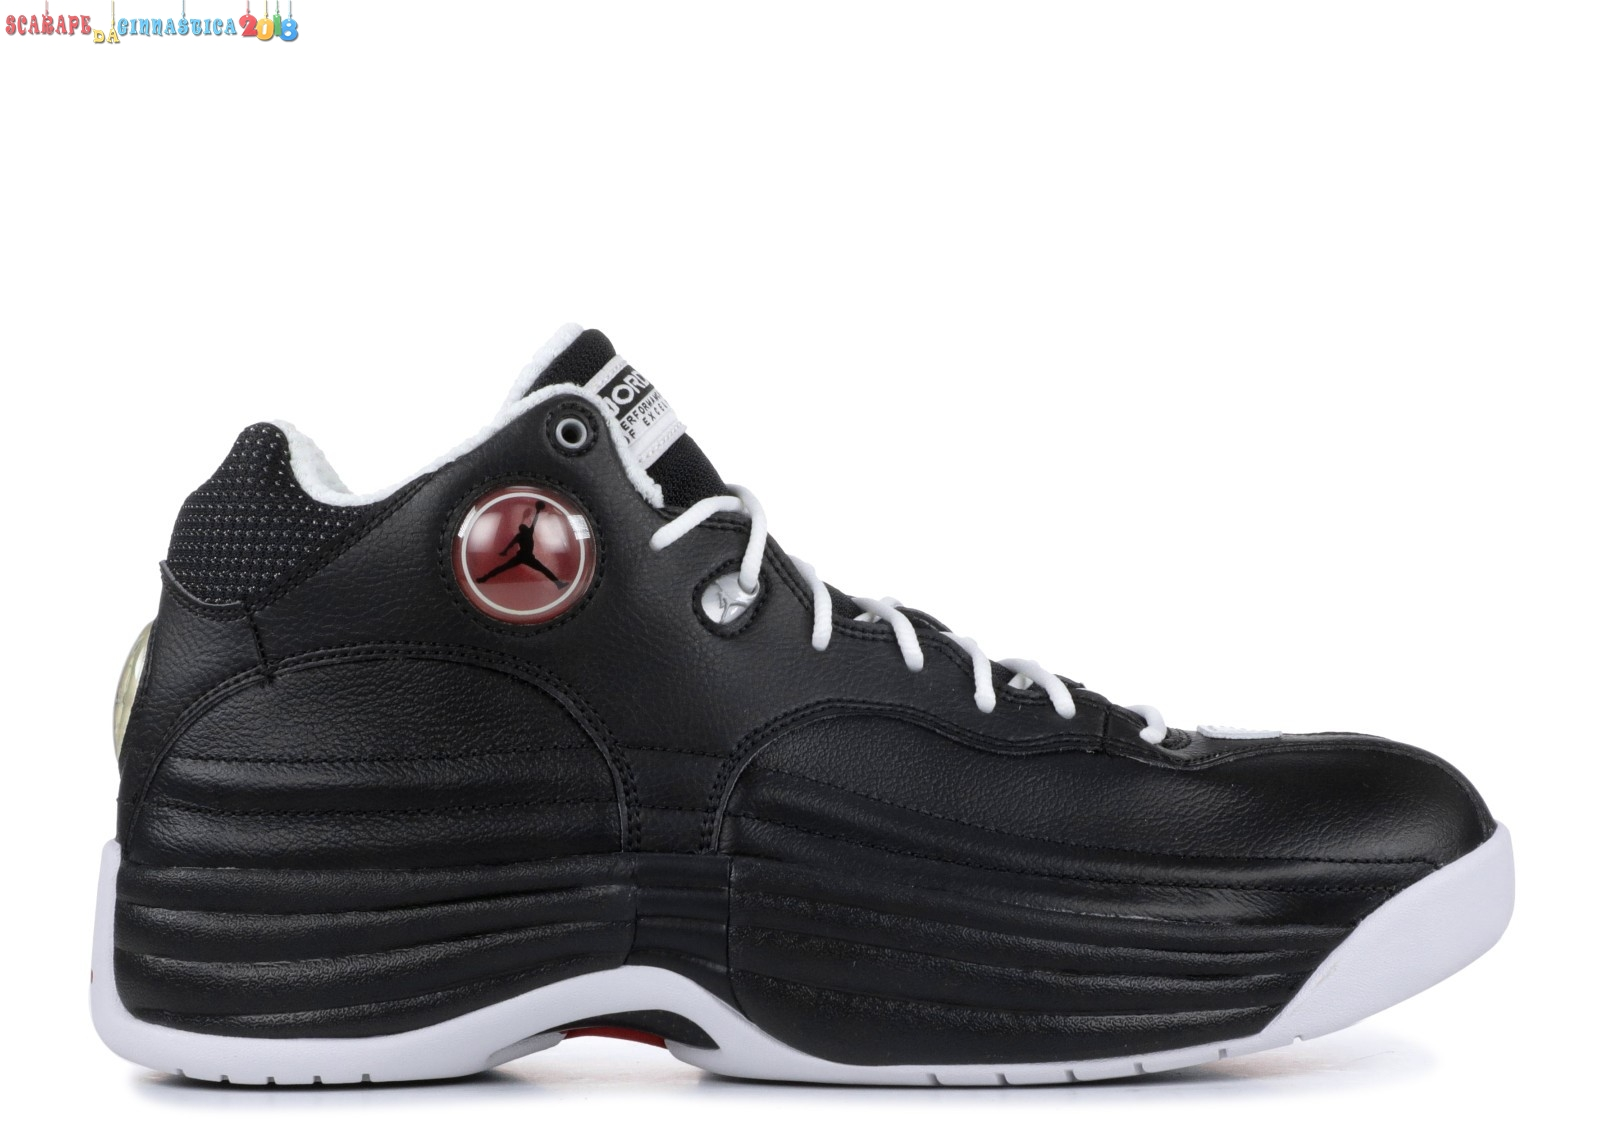 Buy Air Jordan Jumpman Team 1 Nero (644938-002) - Uomo - Scarpe da basket